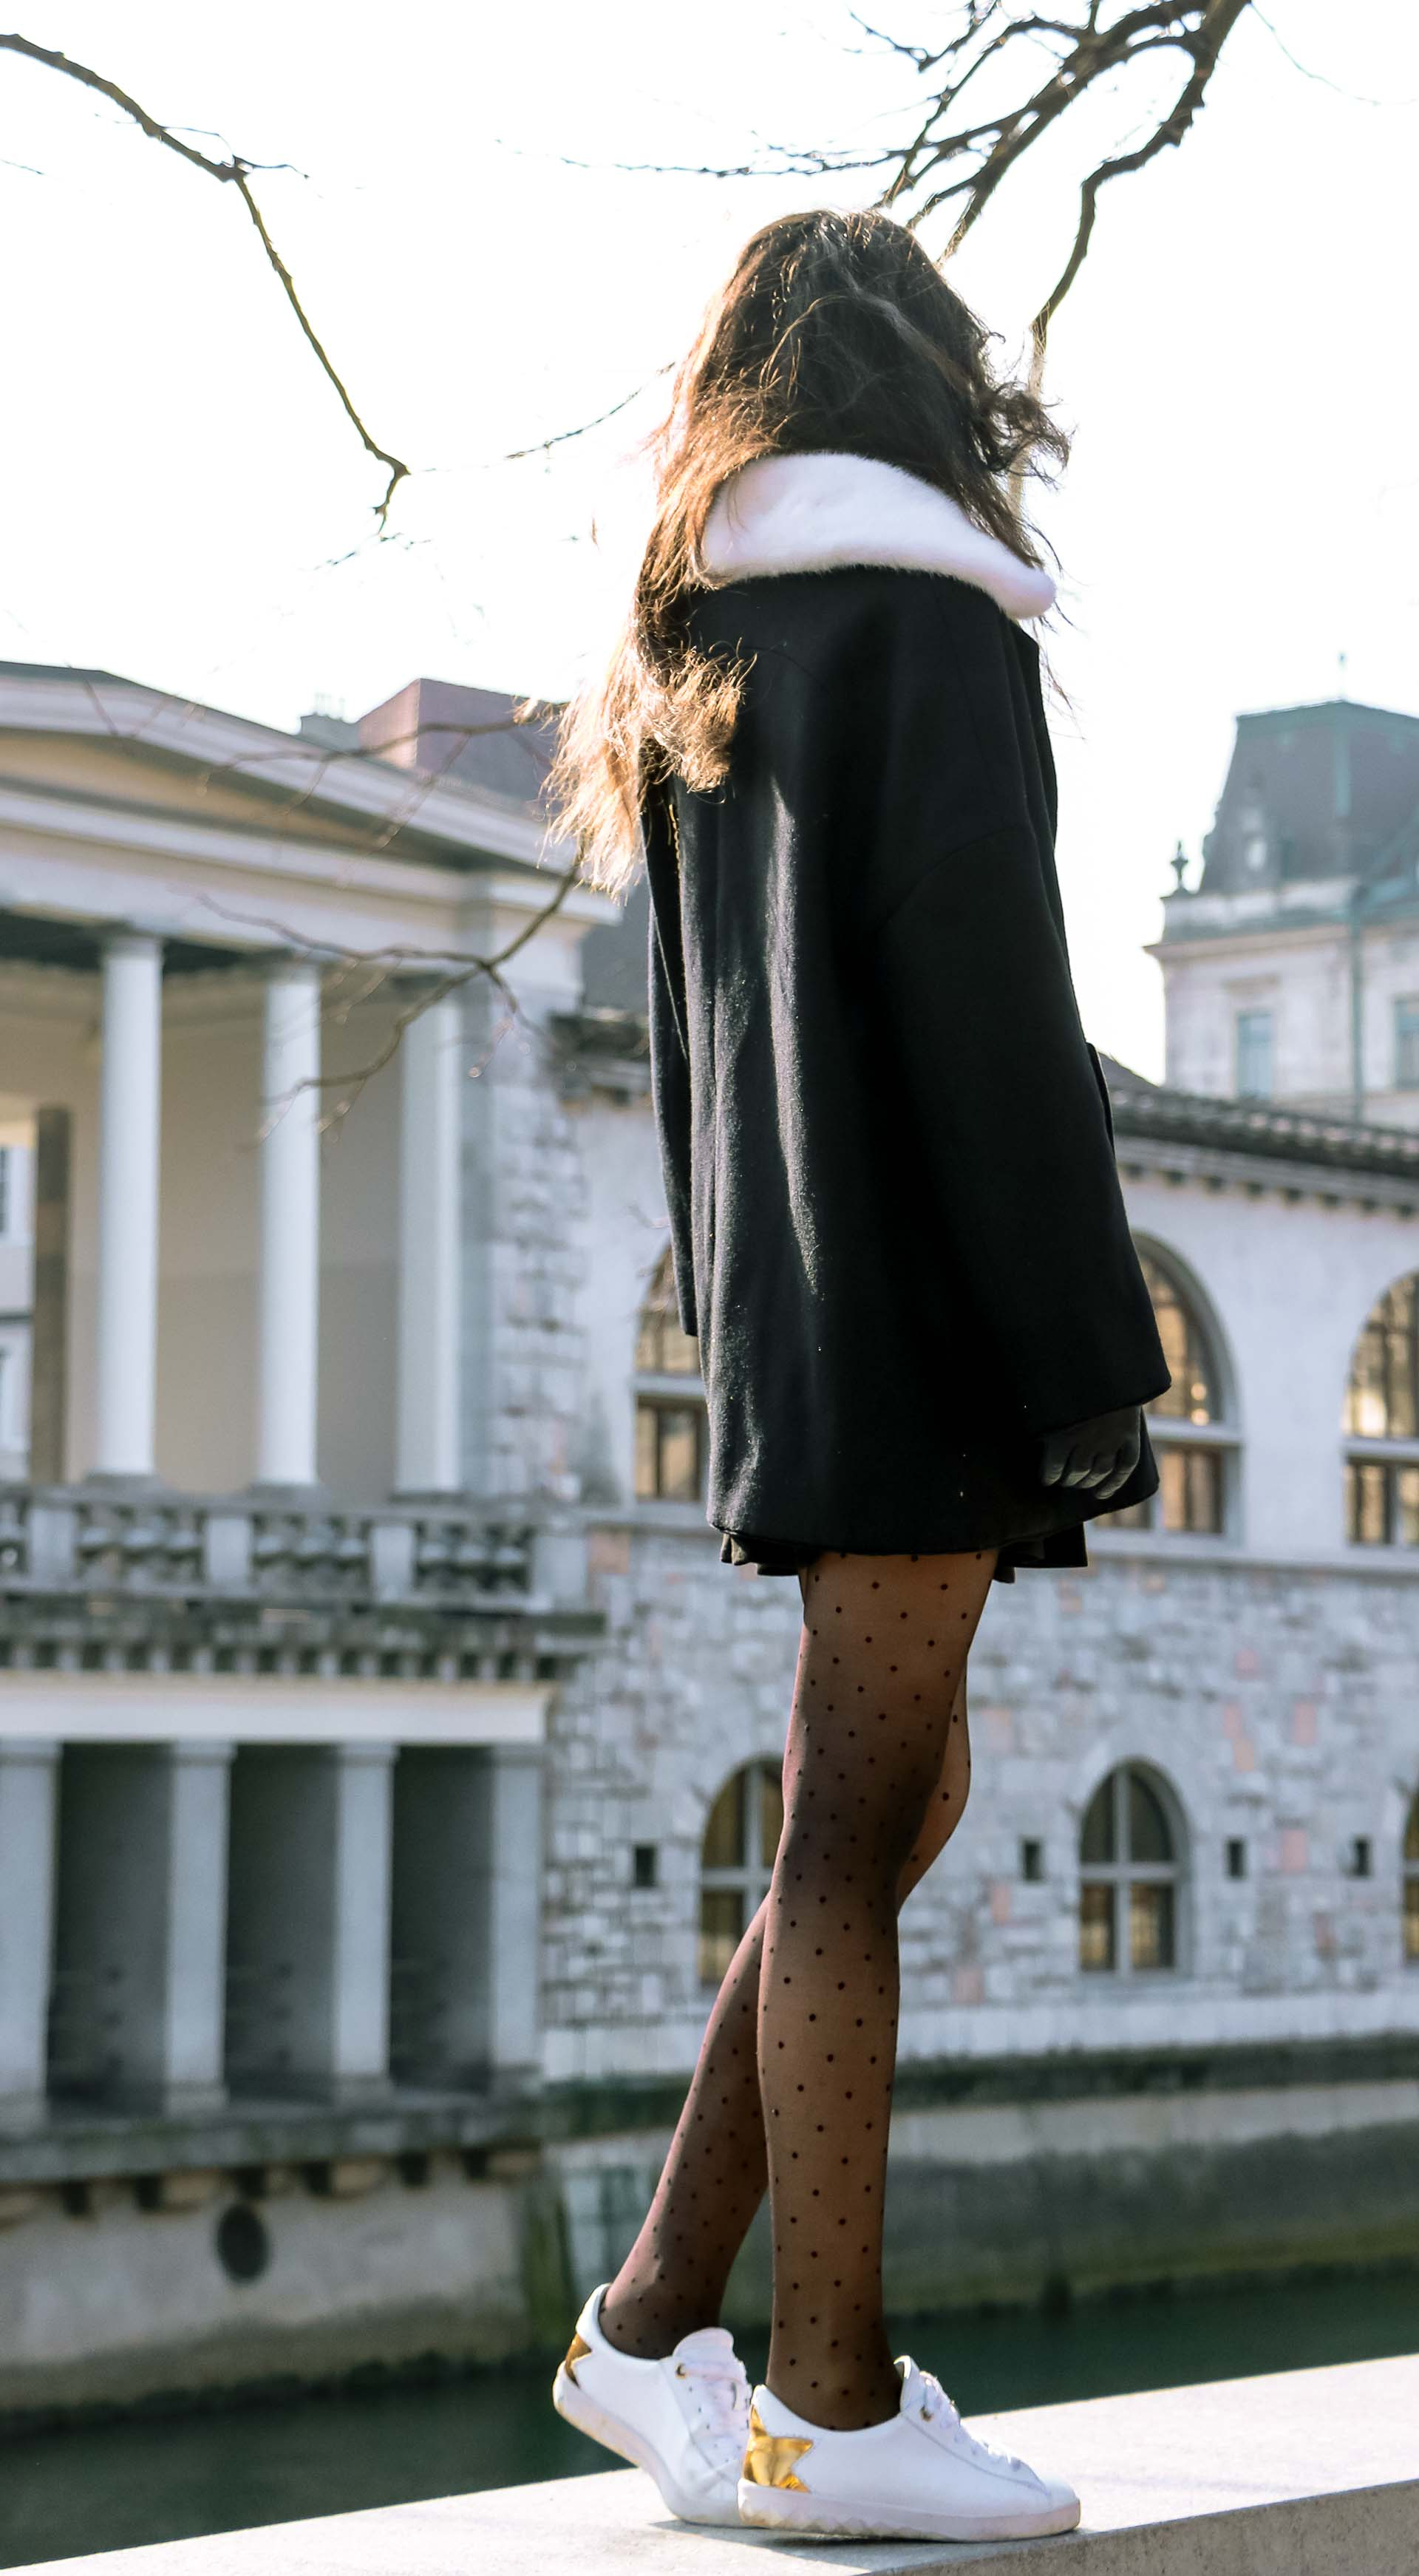 Fashion Blogger Veronika Lipar of Brunette from Wall Street wearing black Escada cape, black mini skirt and white sneakers from Diesel with black polka dot tights and white shoulder chain bag and blue leather gloves while standing on a wall showing her back